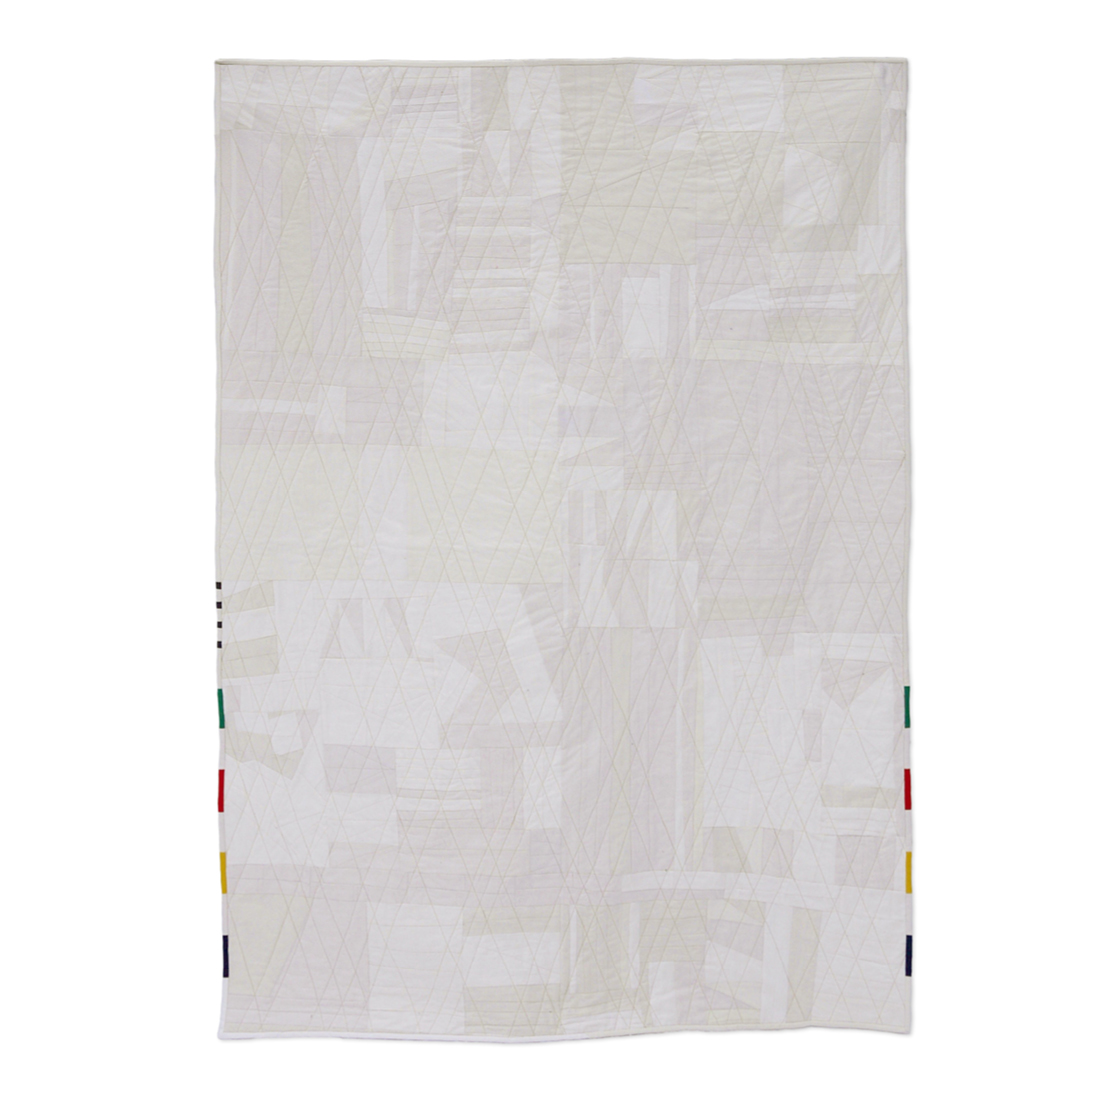 "<b>Snow City</b><br>49"" x 70""<br>Cotton, cotton batting, nylon/polyester thread<br>SOLD"